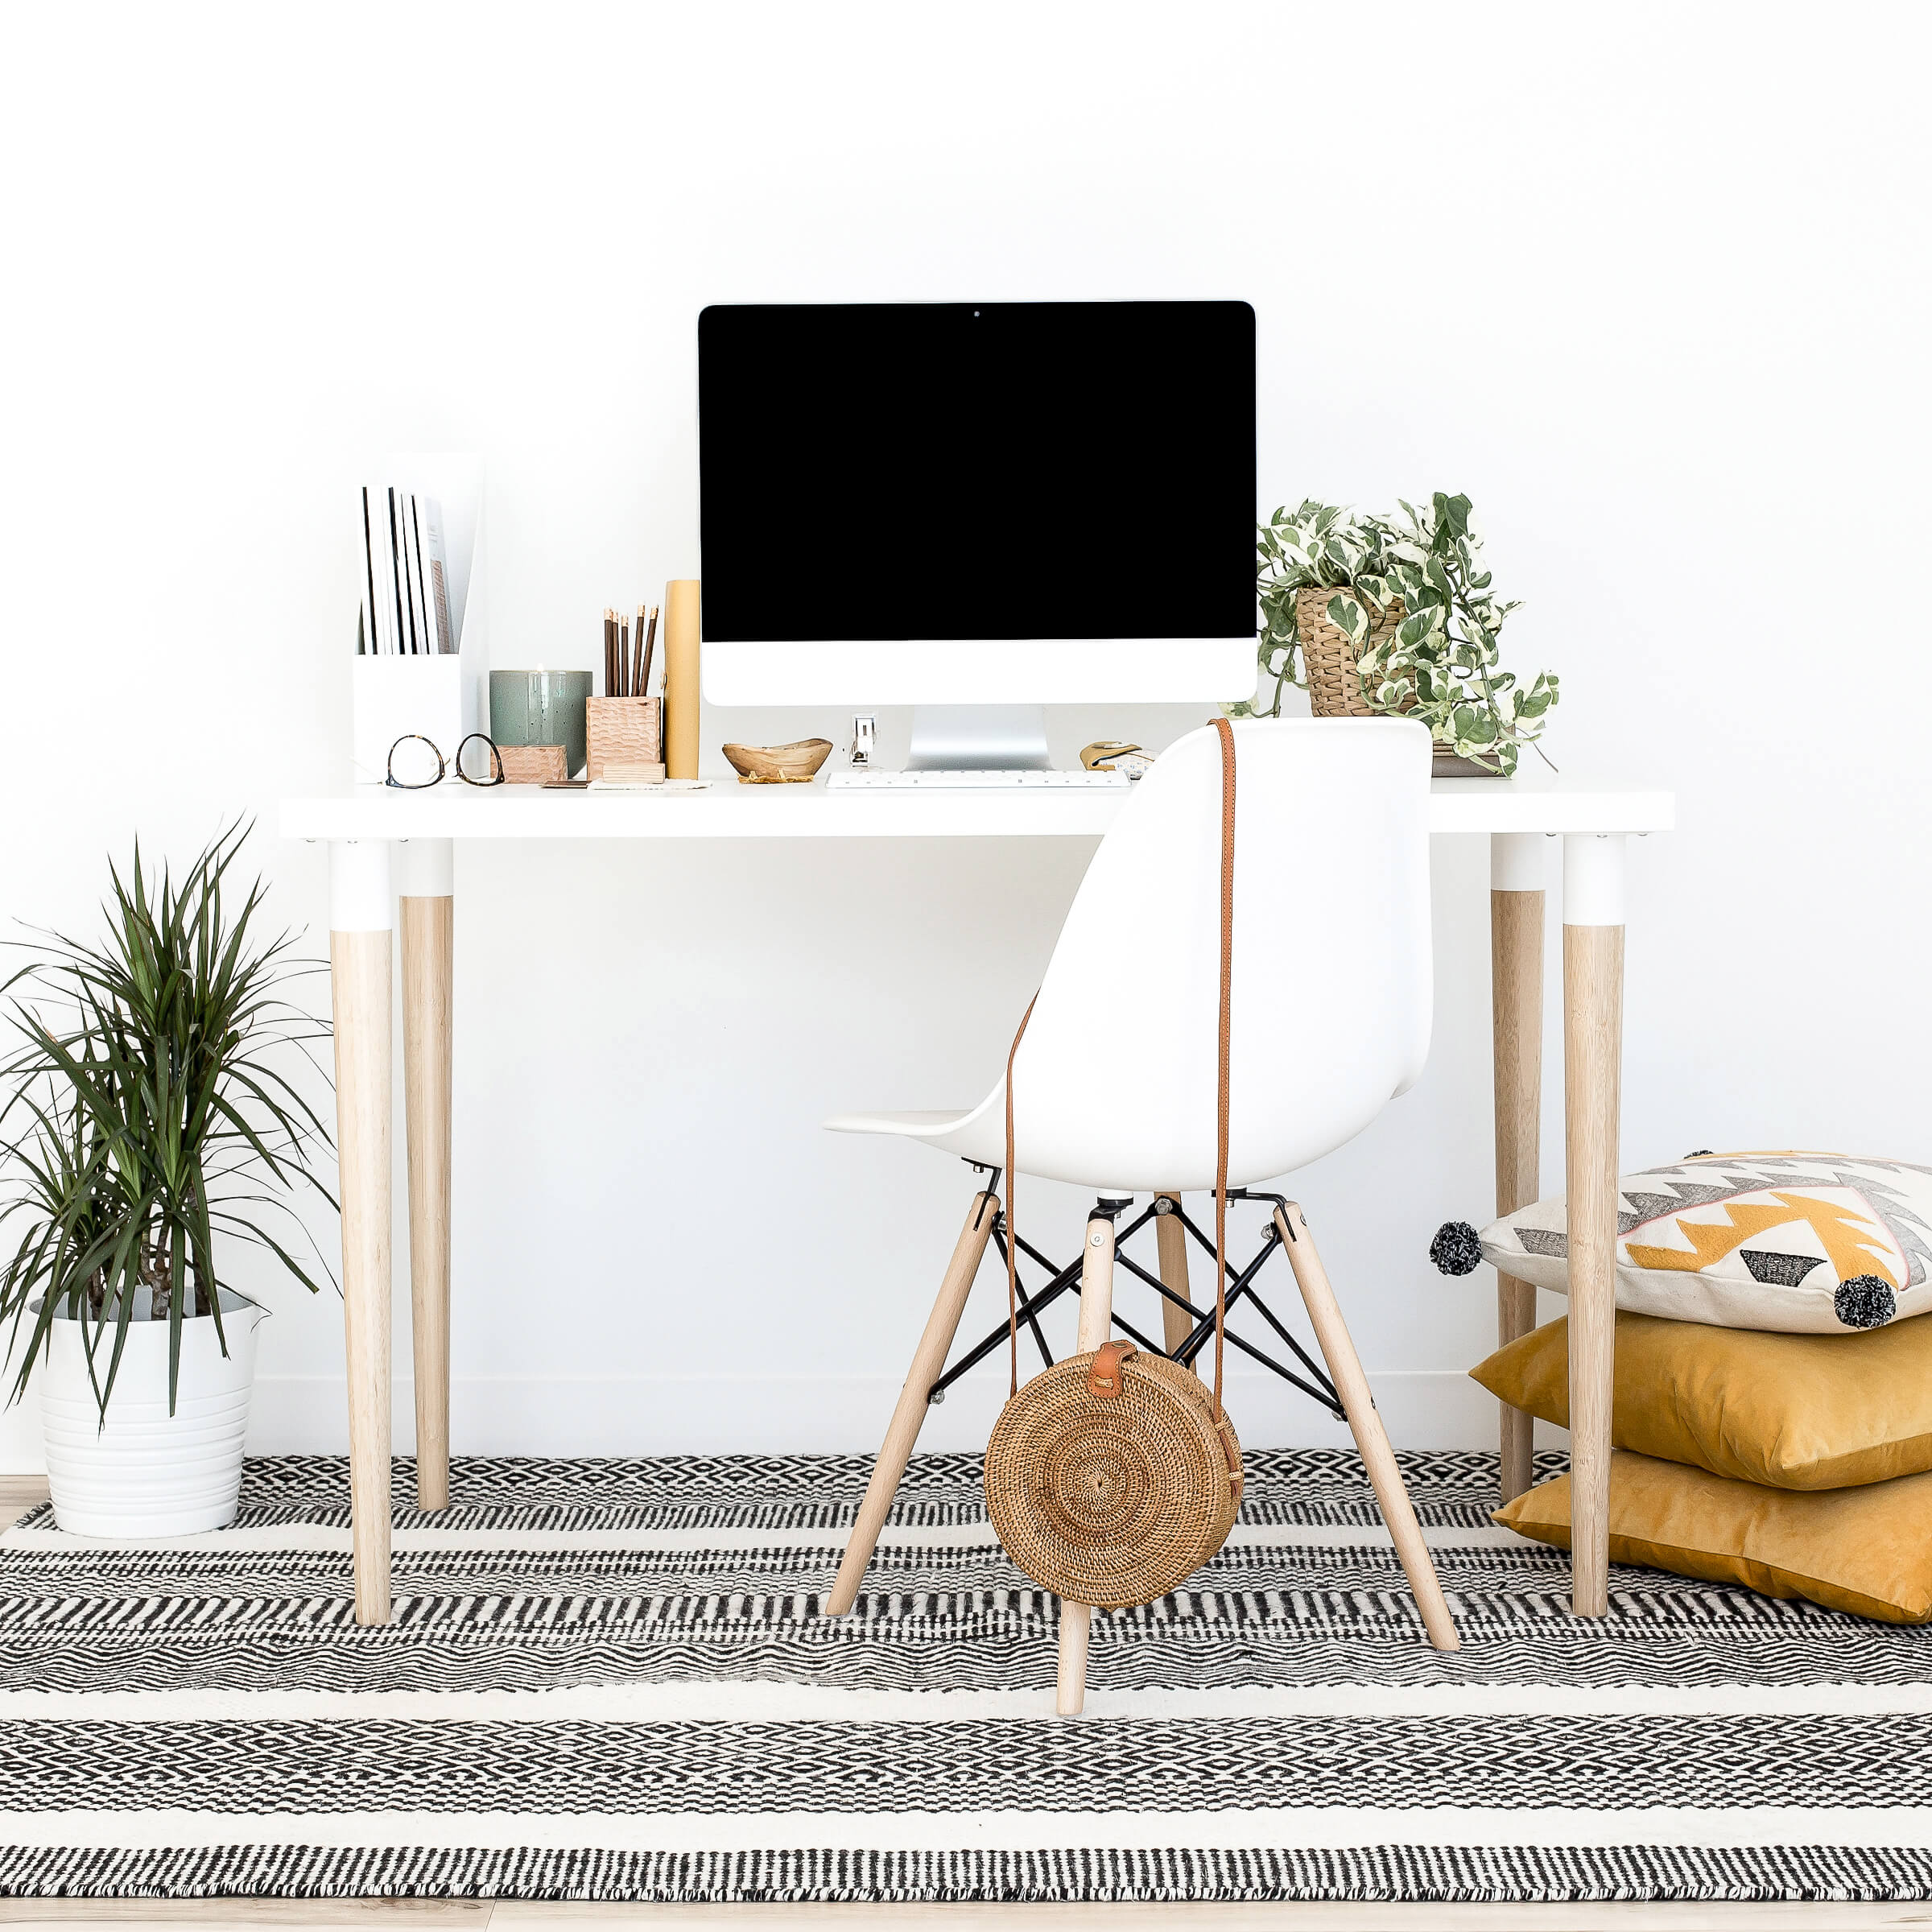 https://eden-law.com/wp-content/uploads/2019/12/haute-stock-photography-boho-office-collection-final-4.jpg